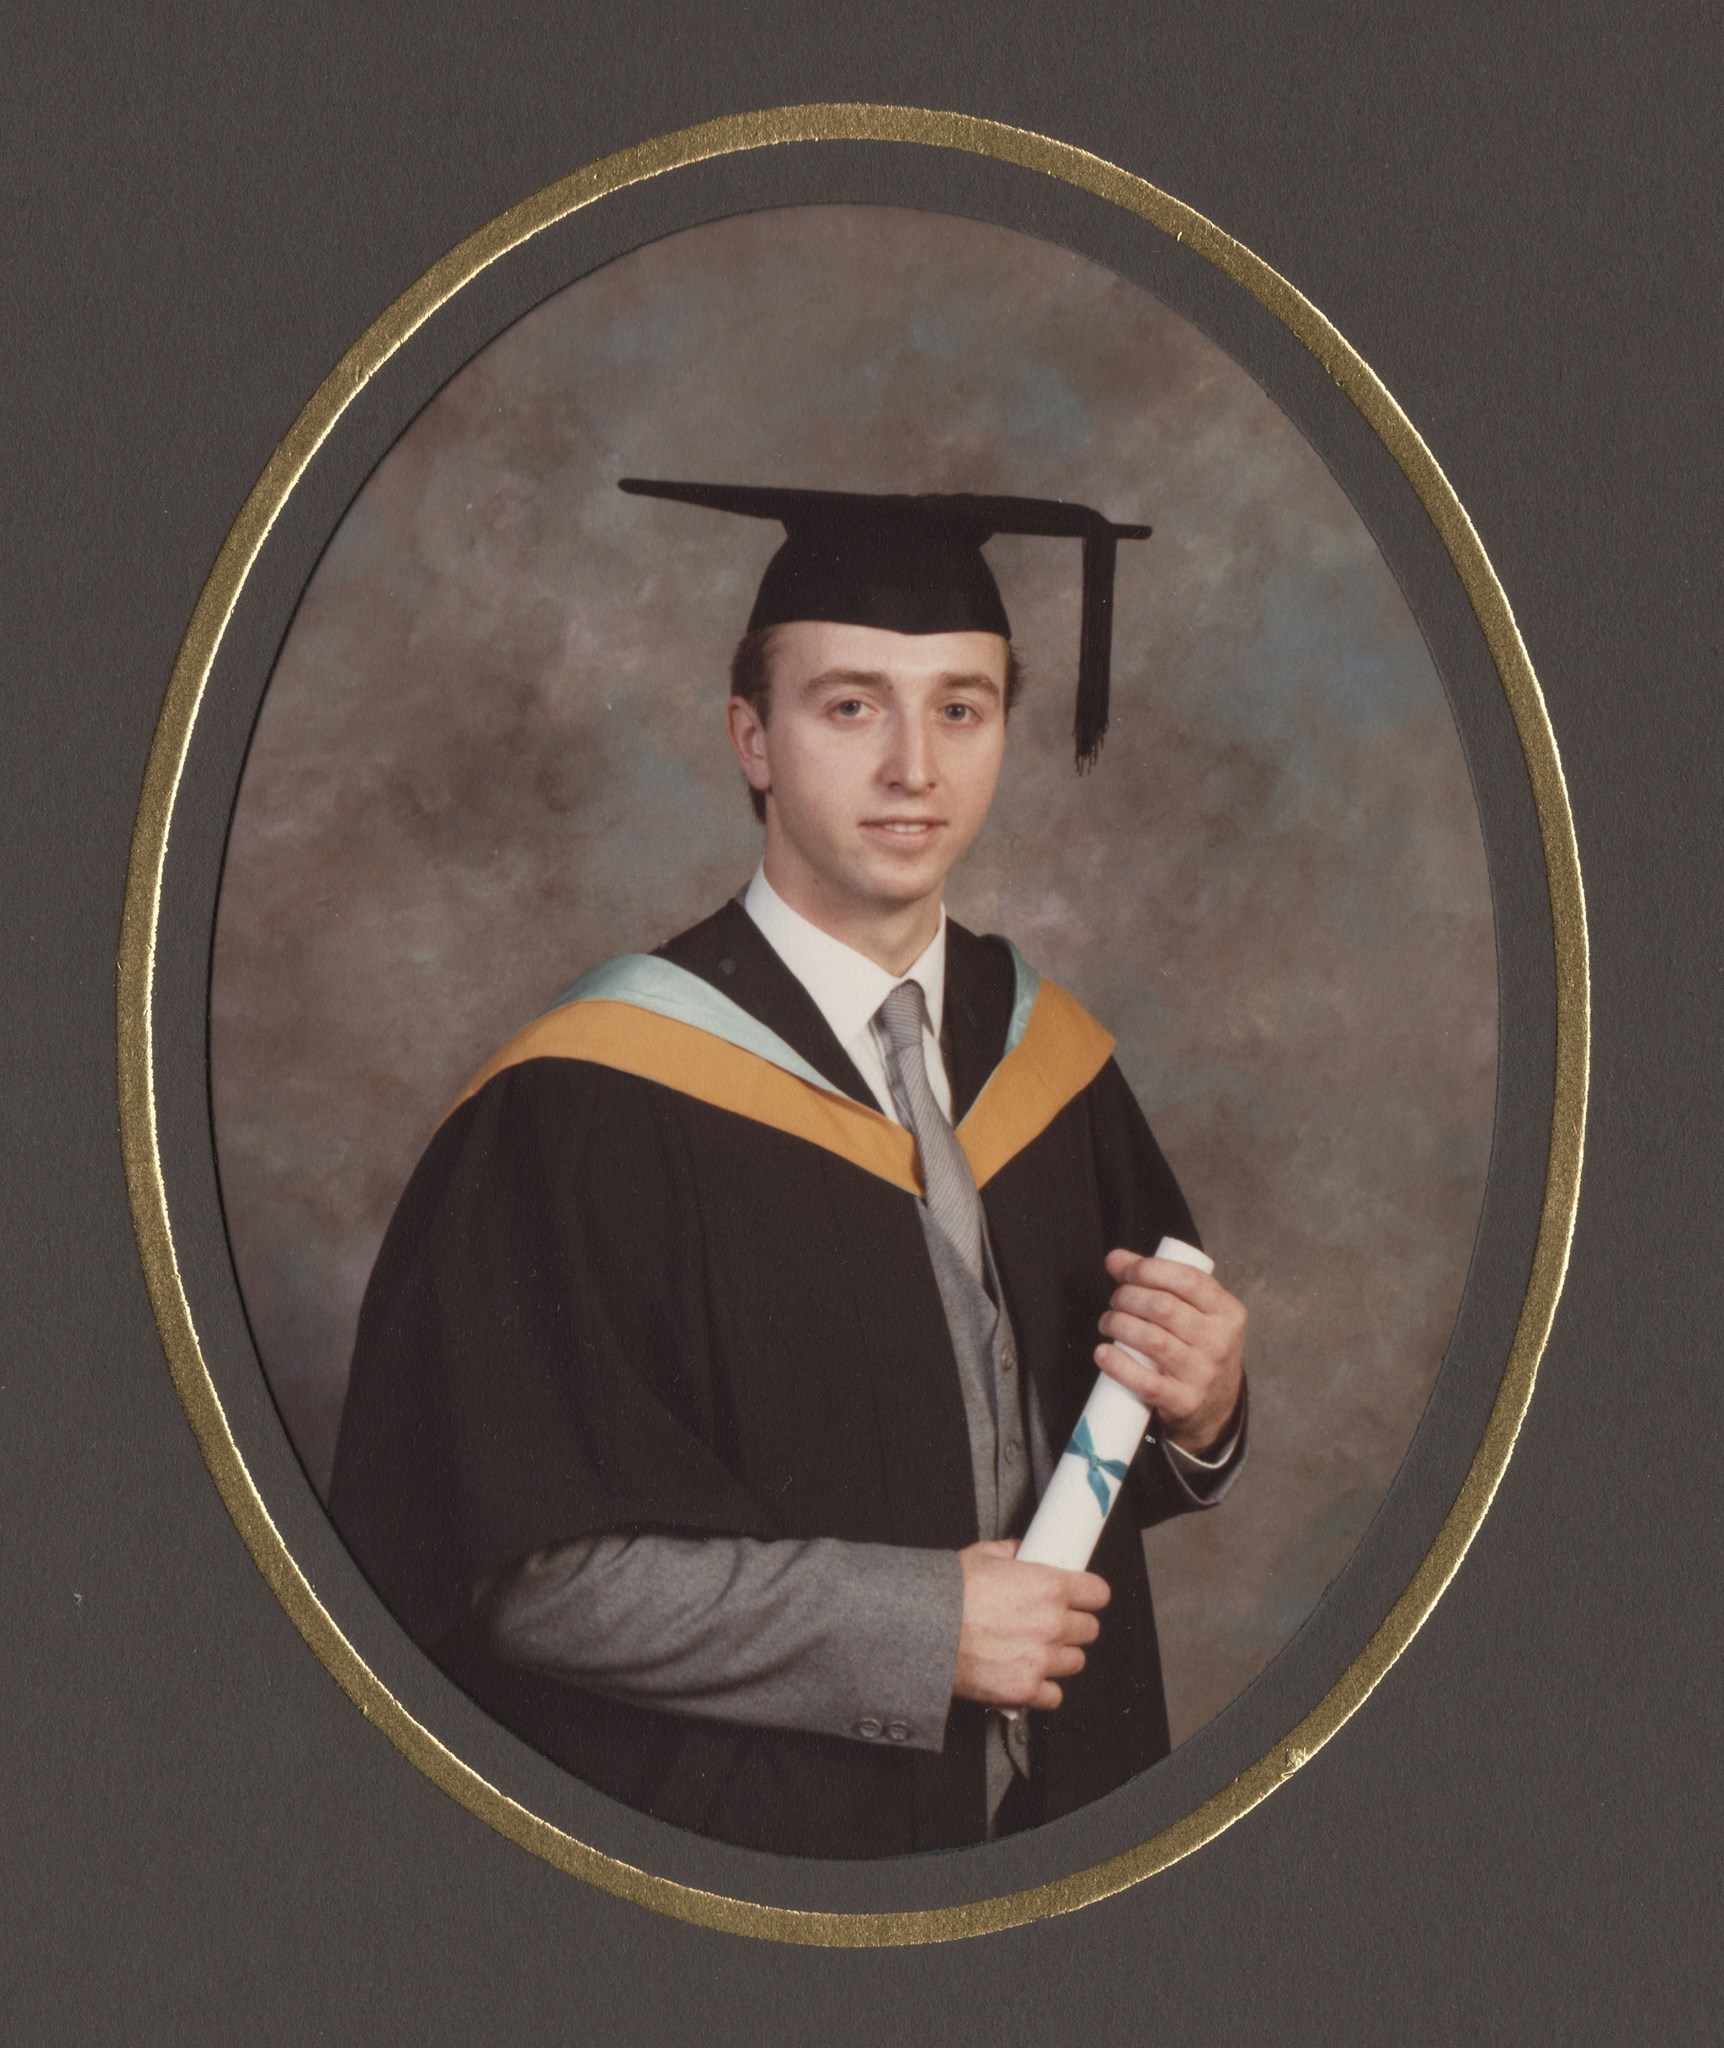 A Proud Day - John Summerbell graduated with BSc in Physiotherapy from Royal London Hospital 1986